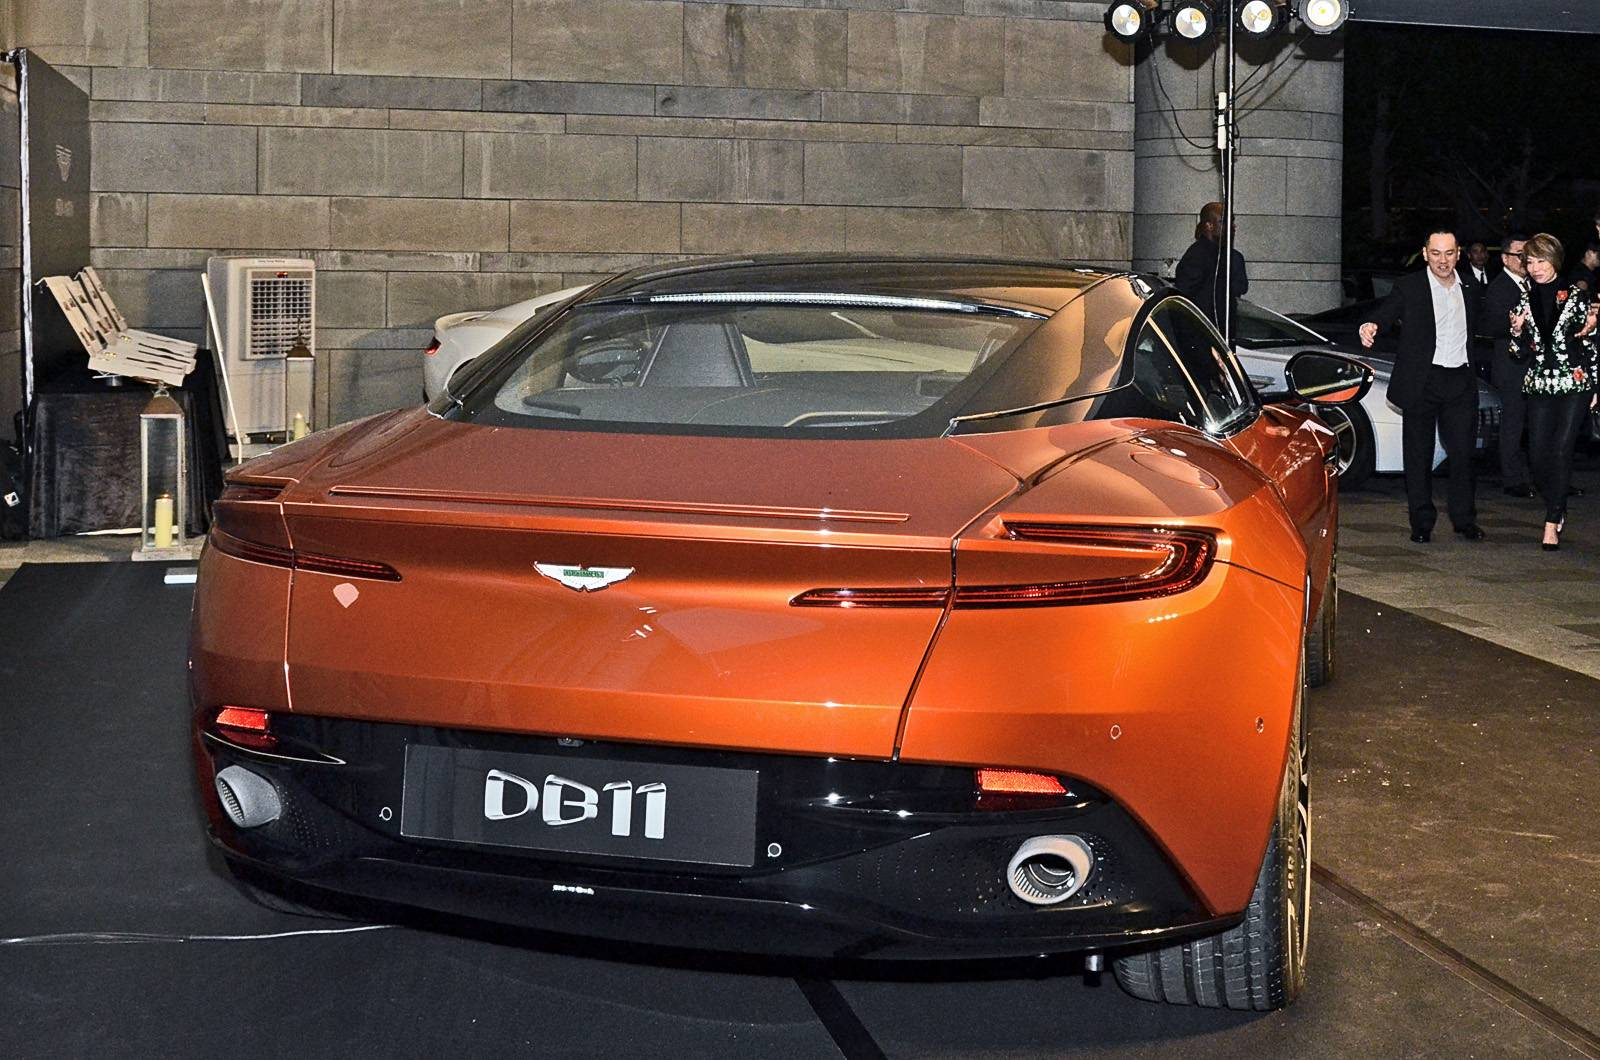 Aston Martin Db11 Price South Africa